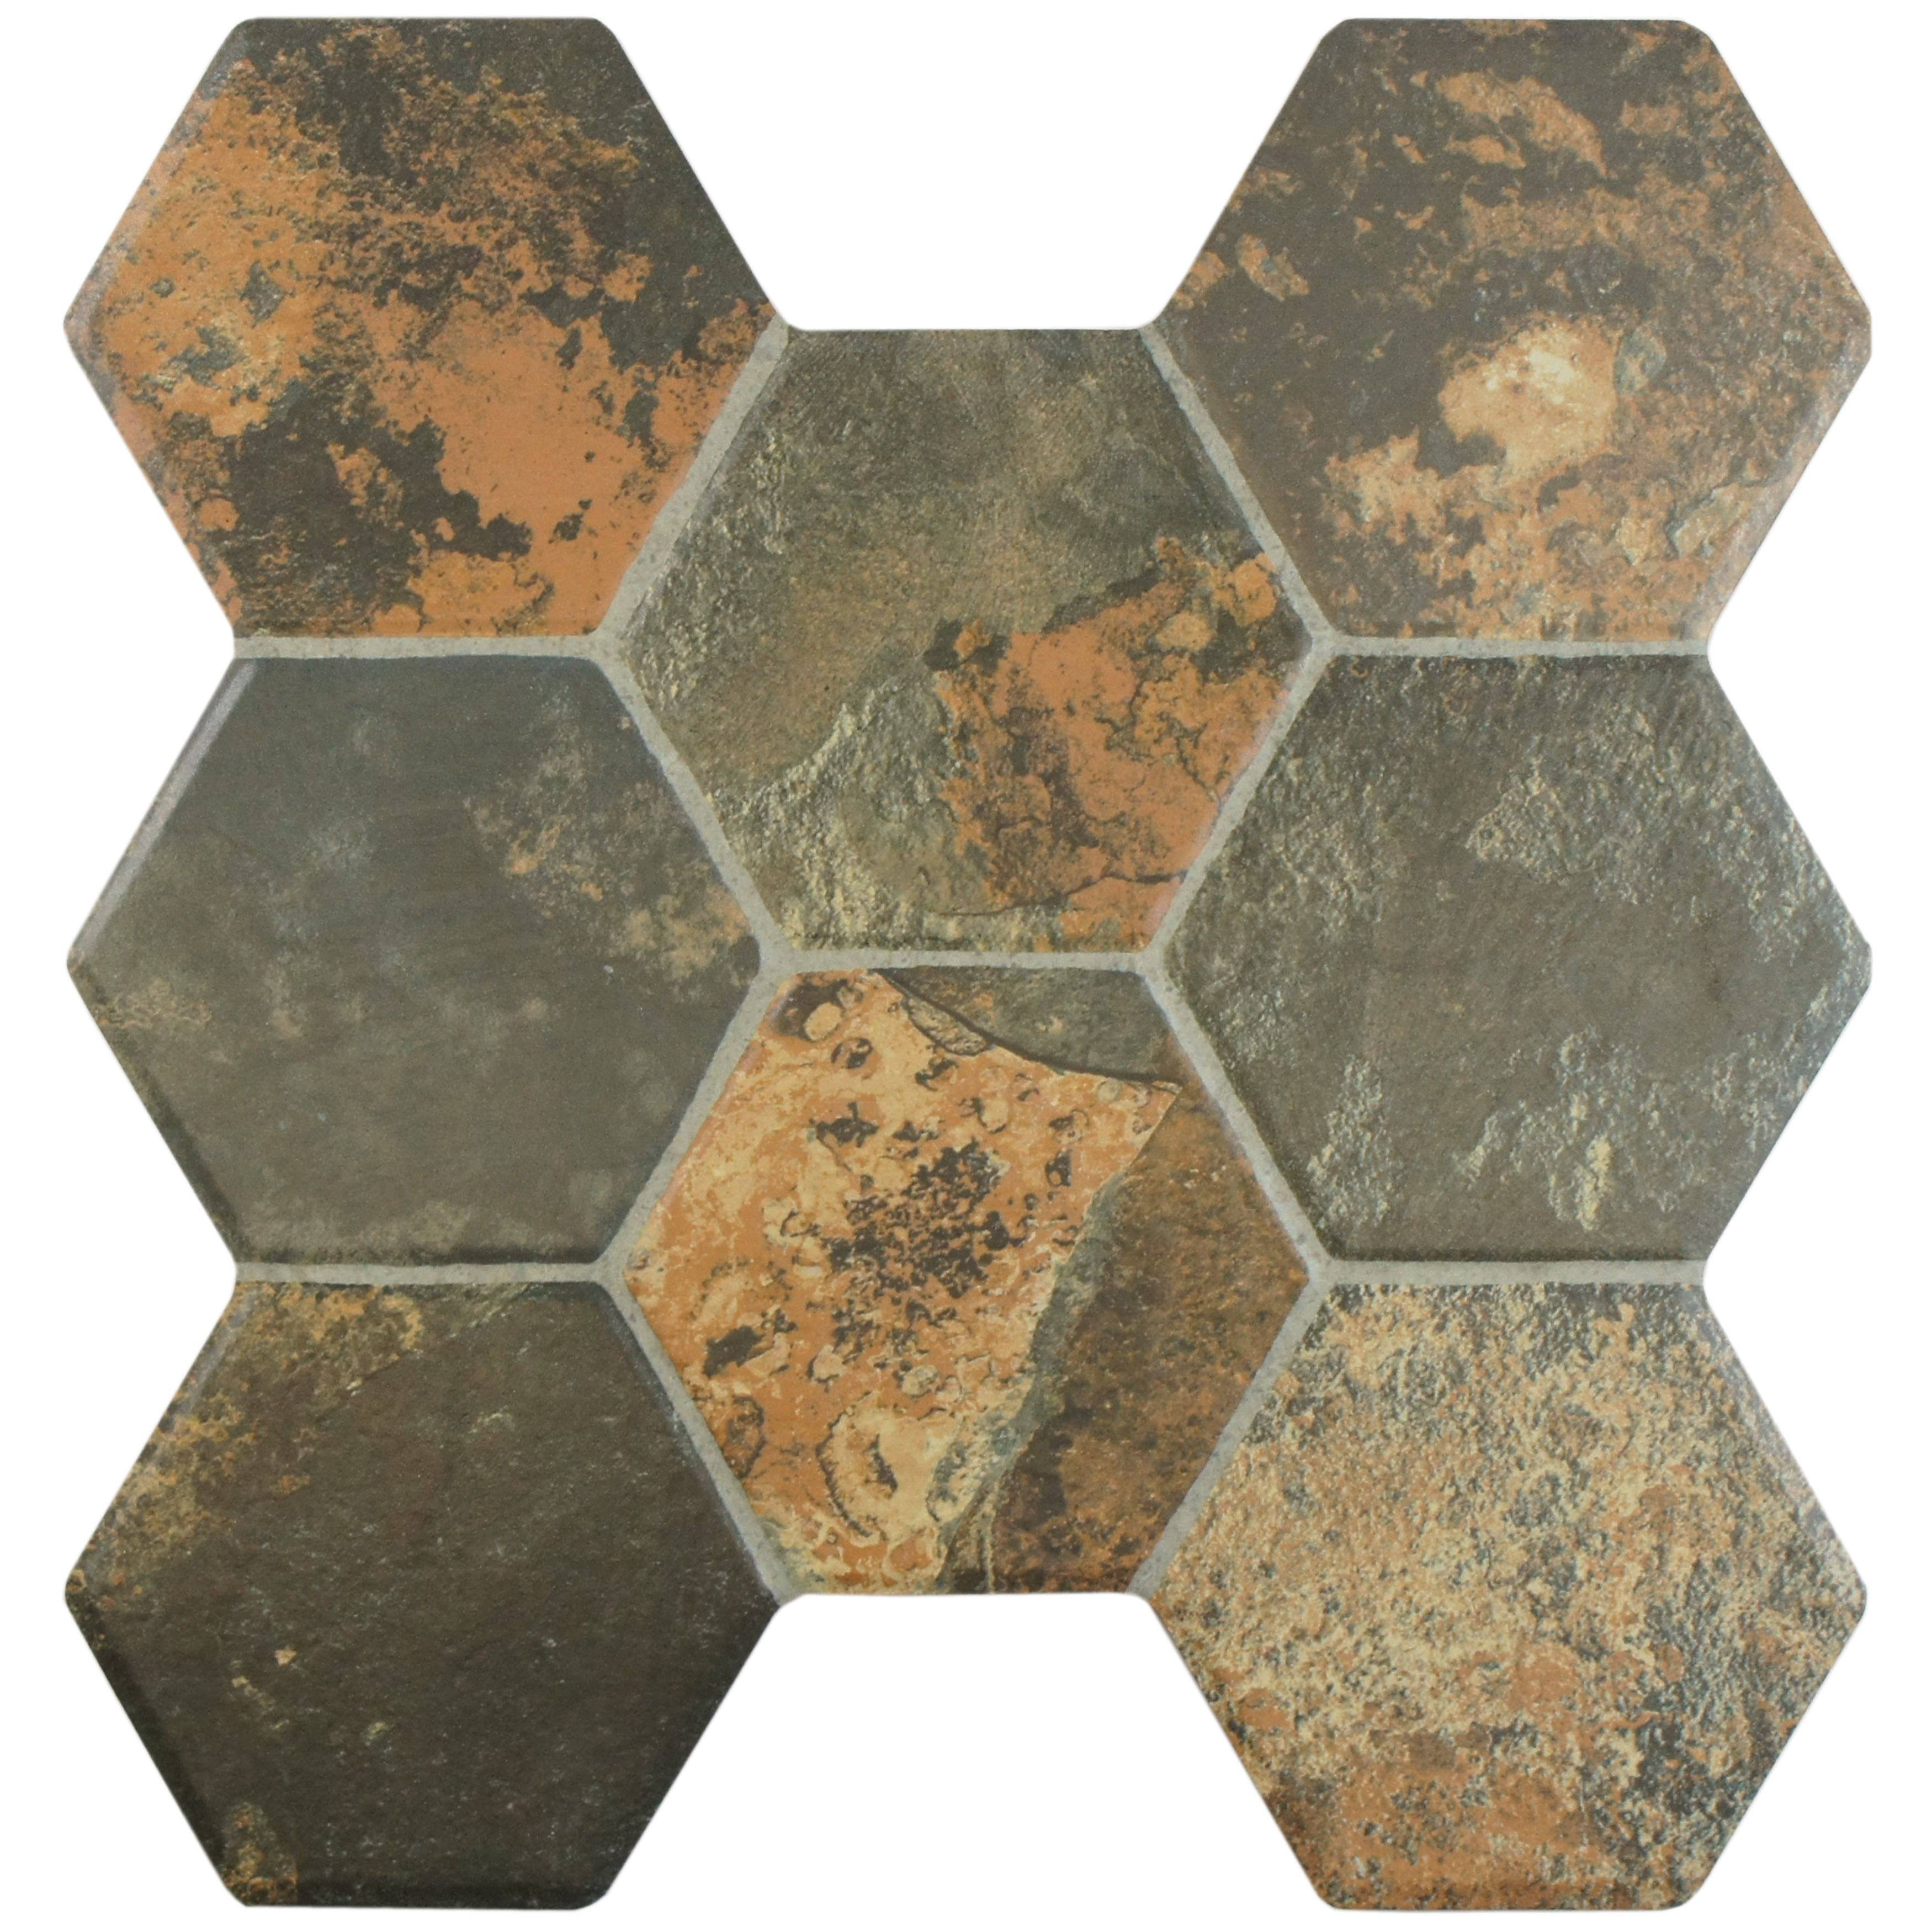 The Somertile 15 25x16 Inch Terrene Magma Ceramic Floor And Wall